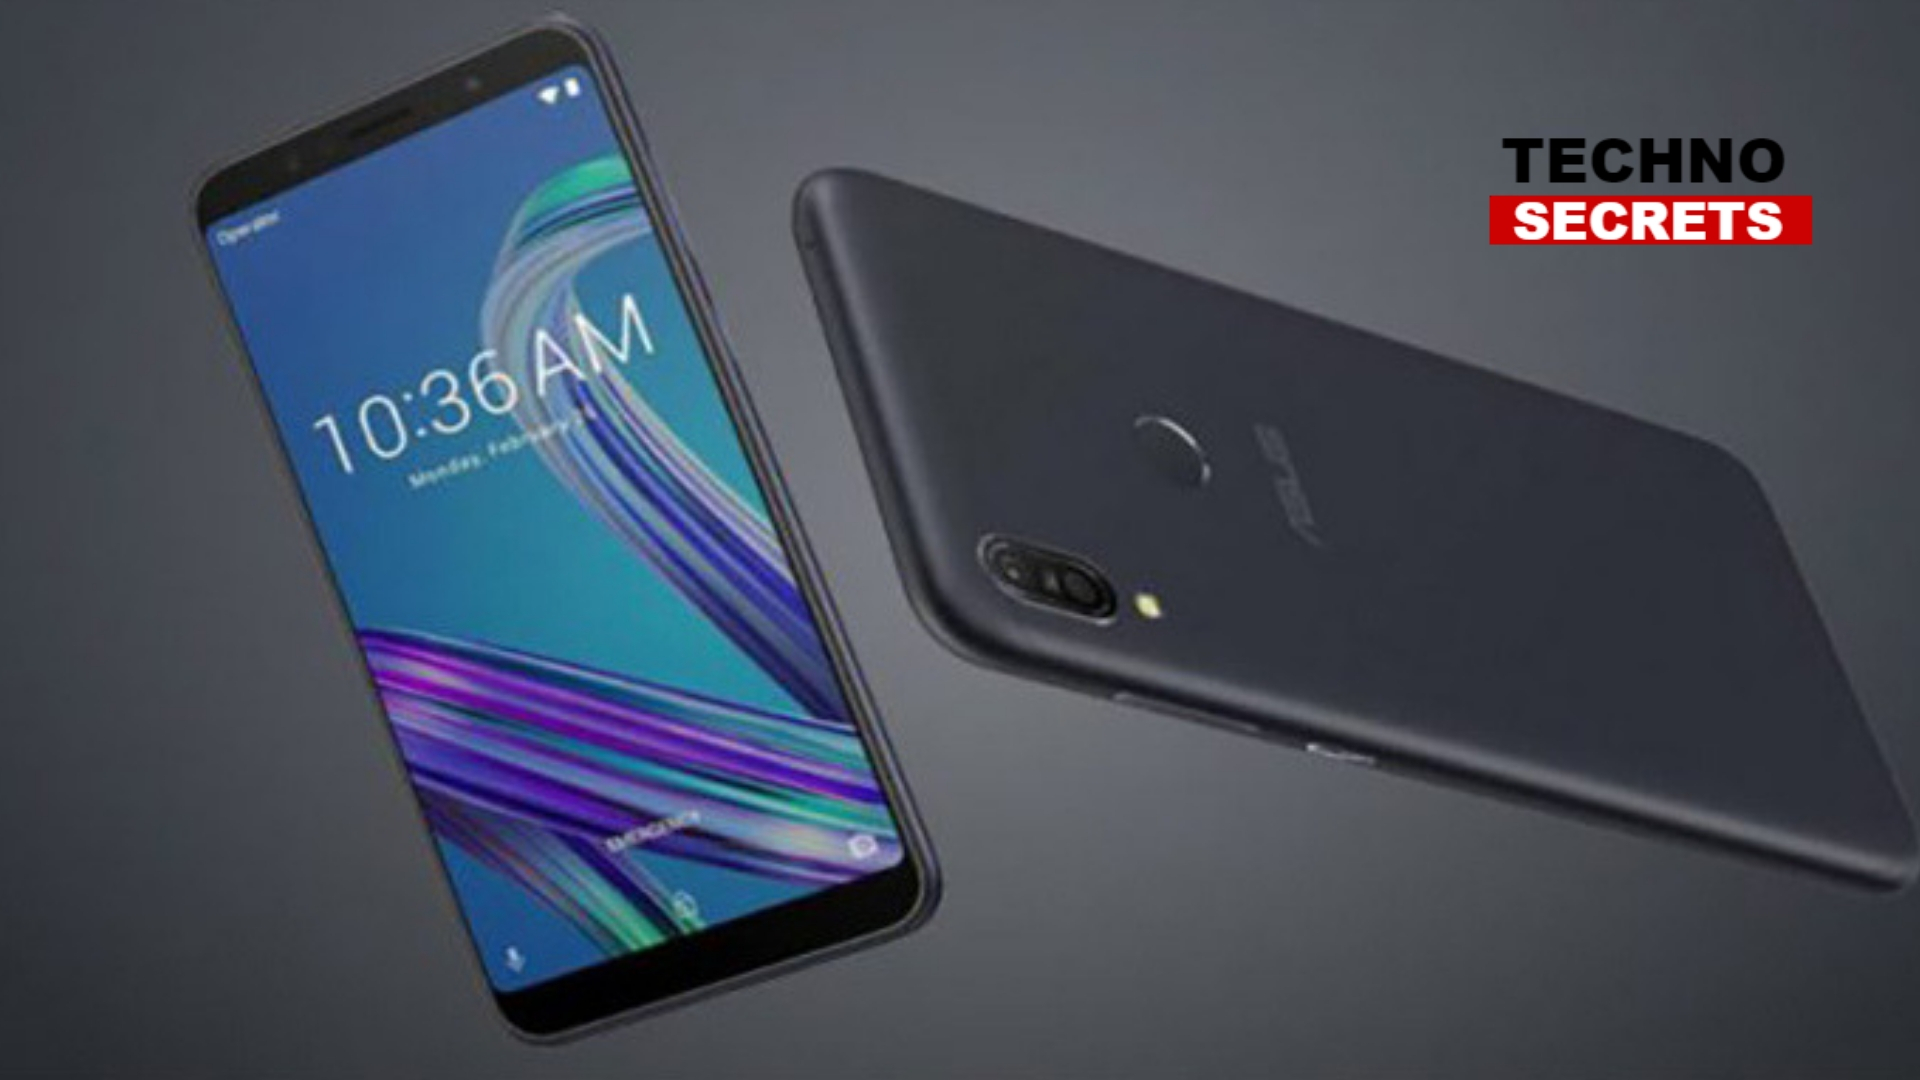 Asus Zenfone Max Pro M2 Photos Leaked; Shows A Dual Rear Camera Setup